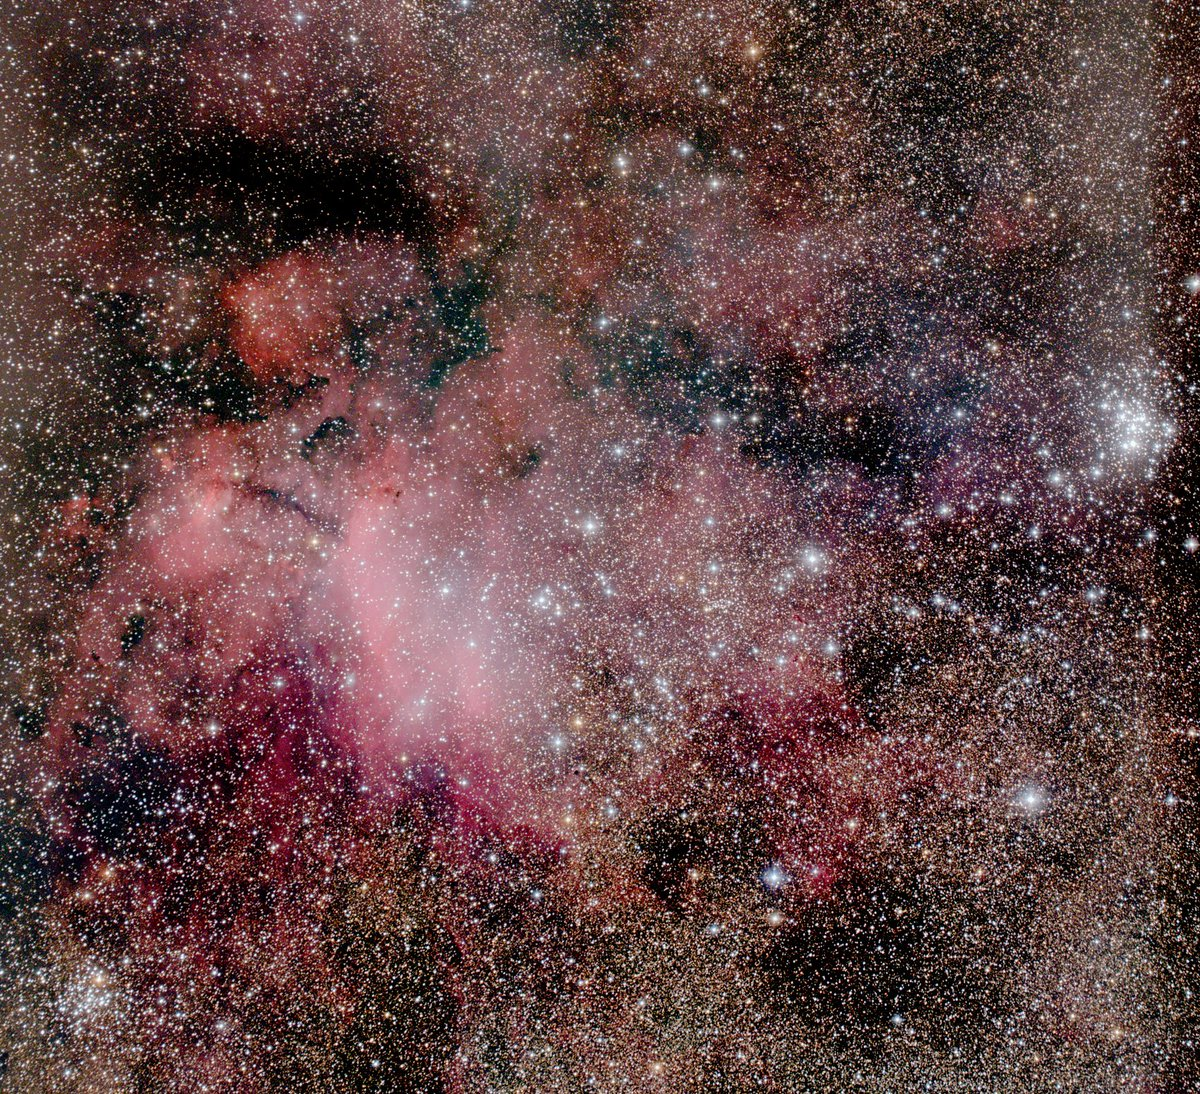 sp - Prawn Nebula, Ic4628 in Scorpius, as seen from @UCNZ Mount John Observatory #astronomy #NewZealand